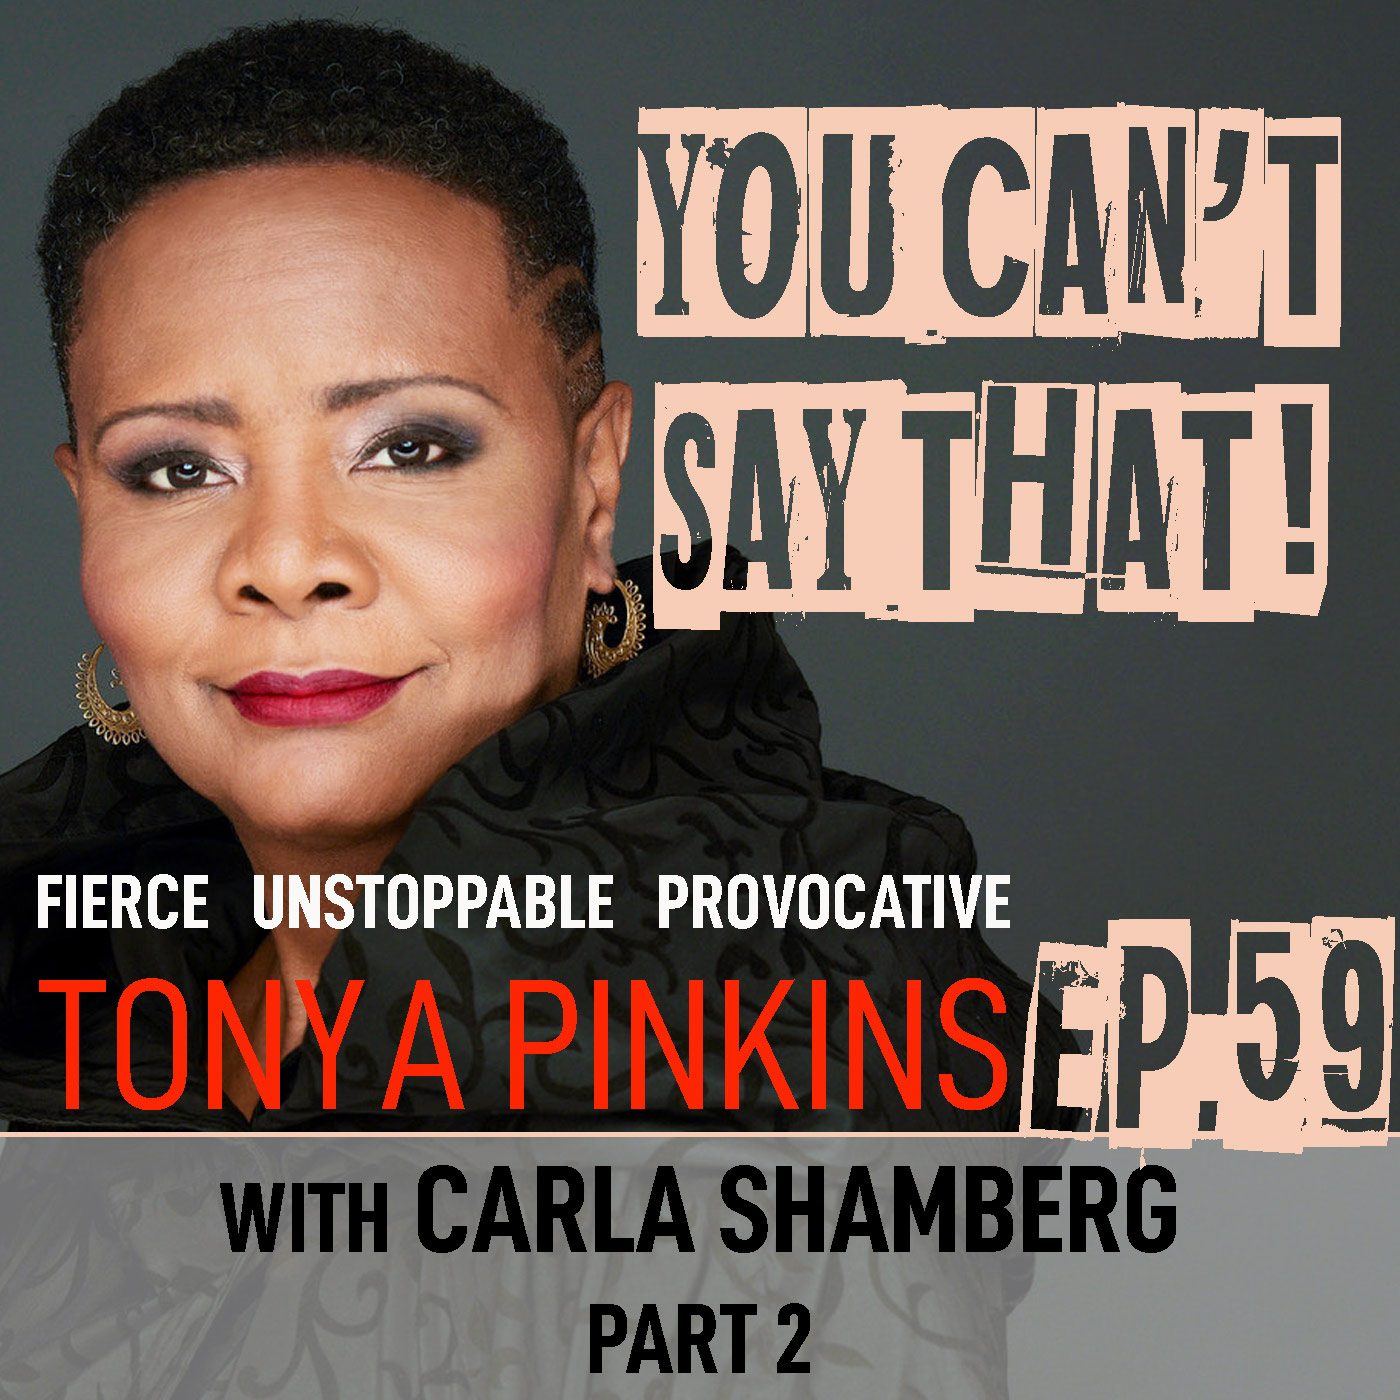 You Can't Say That Tonya Pinkins Ep59 - Carla Shamberg (Part 2)